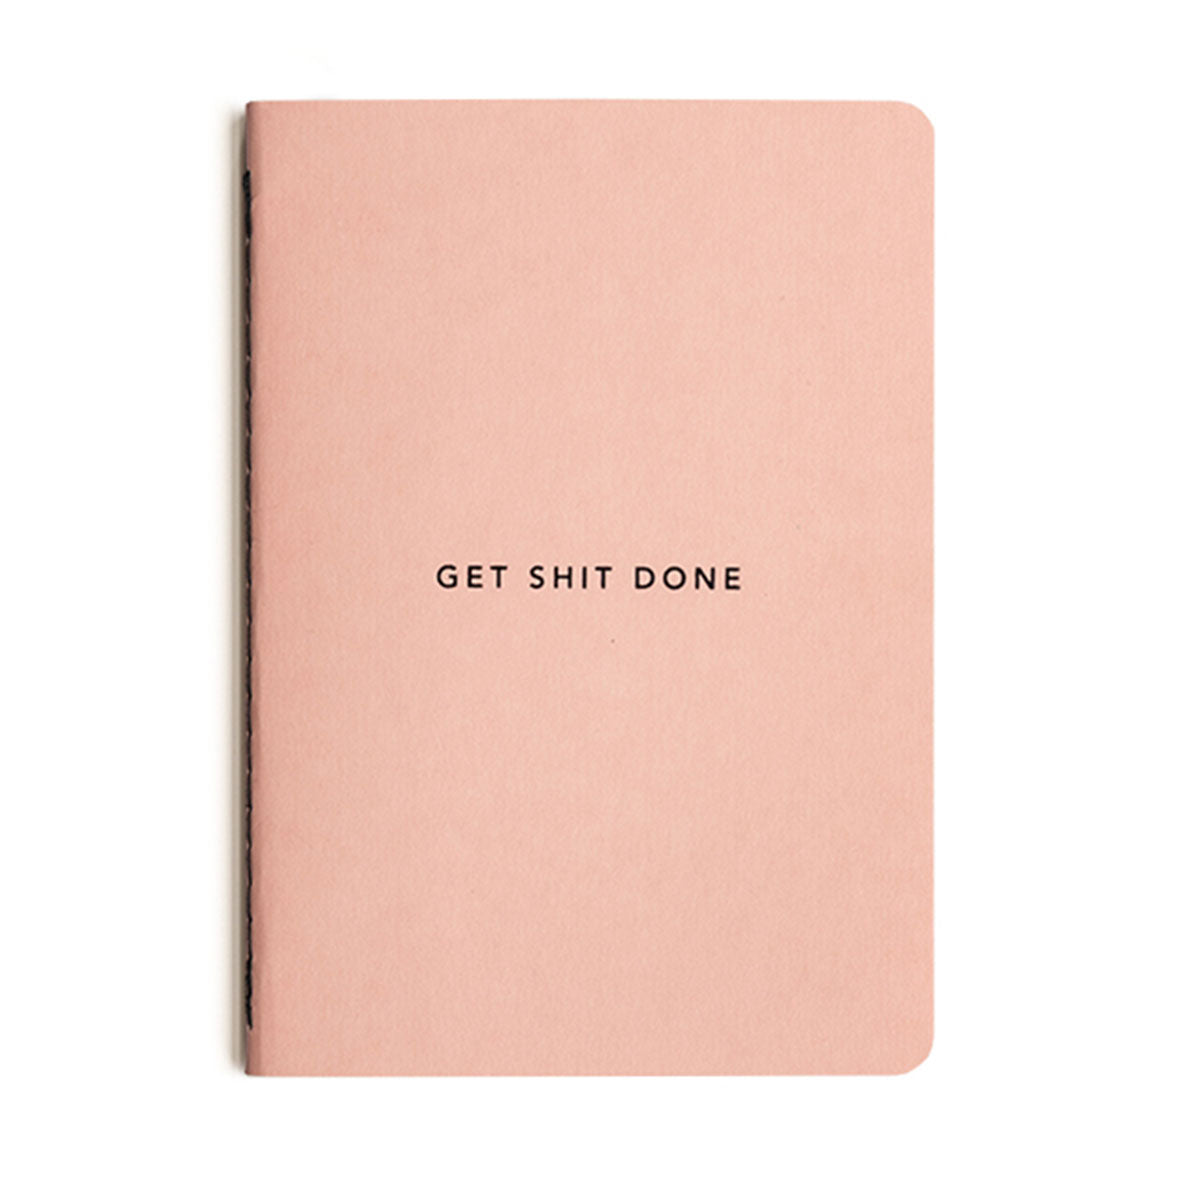 Getting Shit Done - Notebook